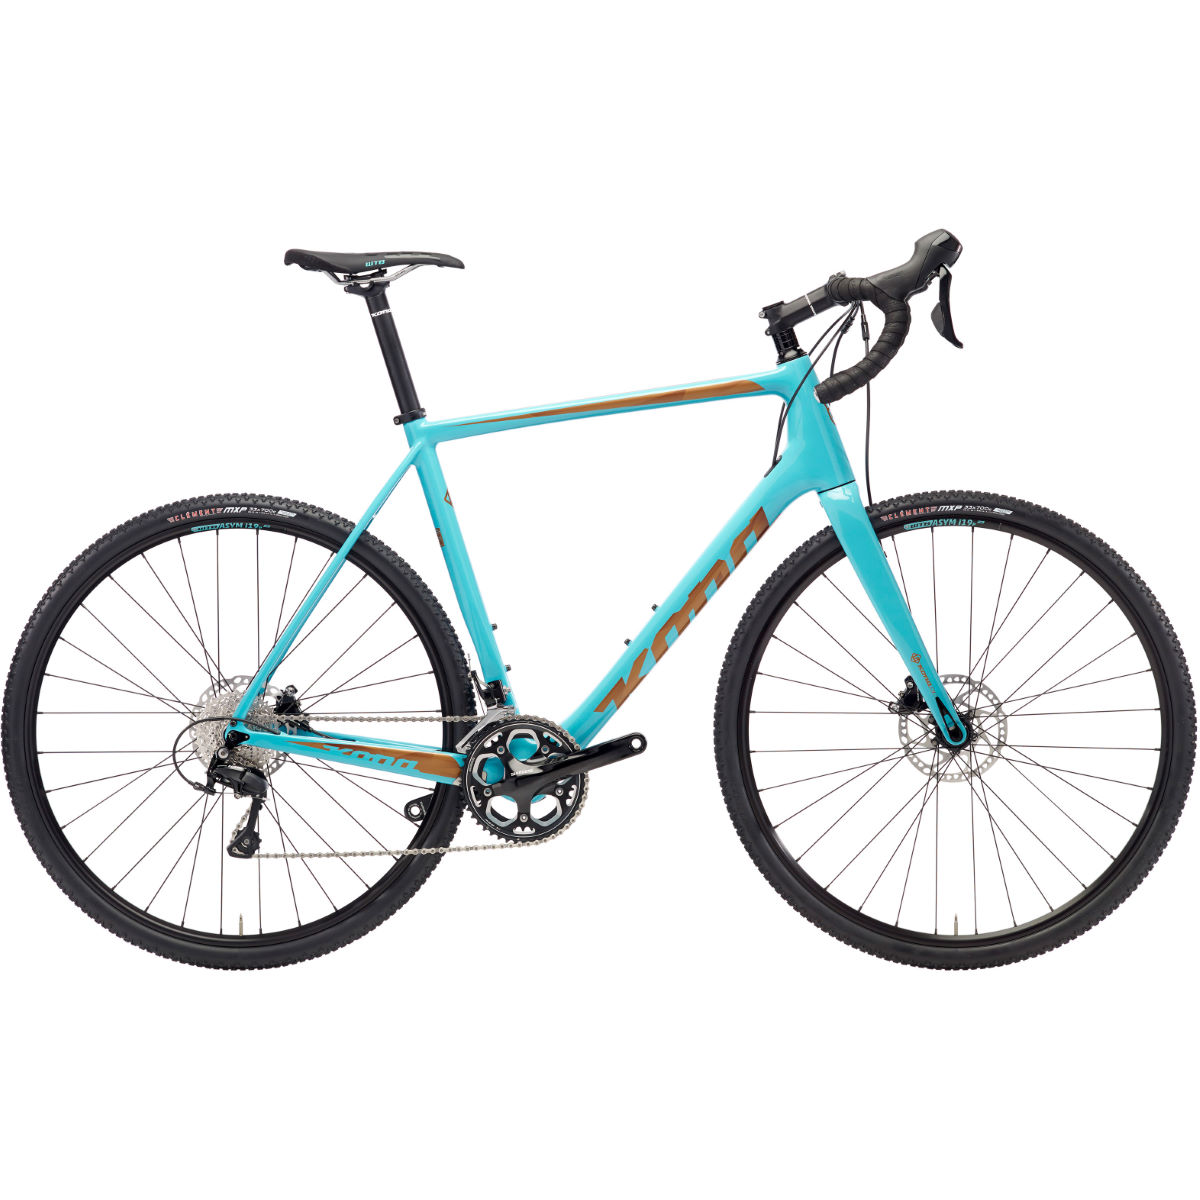 Vélo de route Kona Major Jake (2018) - 52cm Stock Bike Bleu